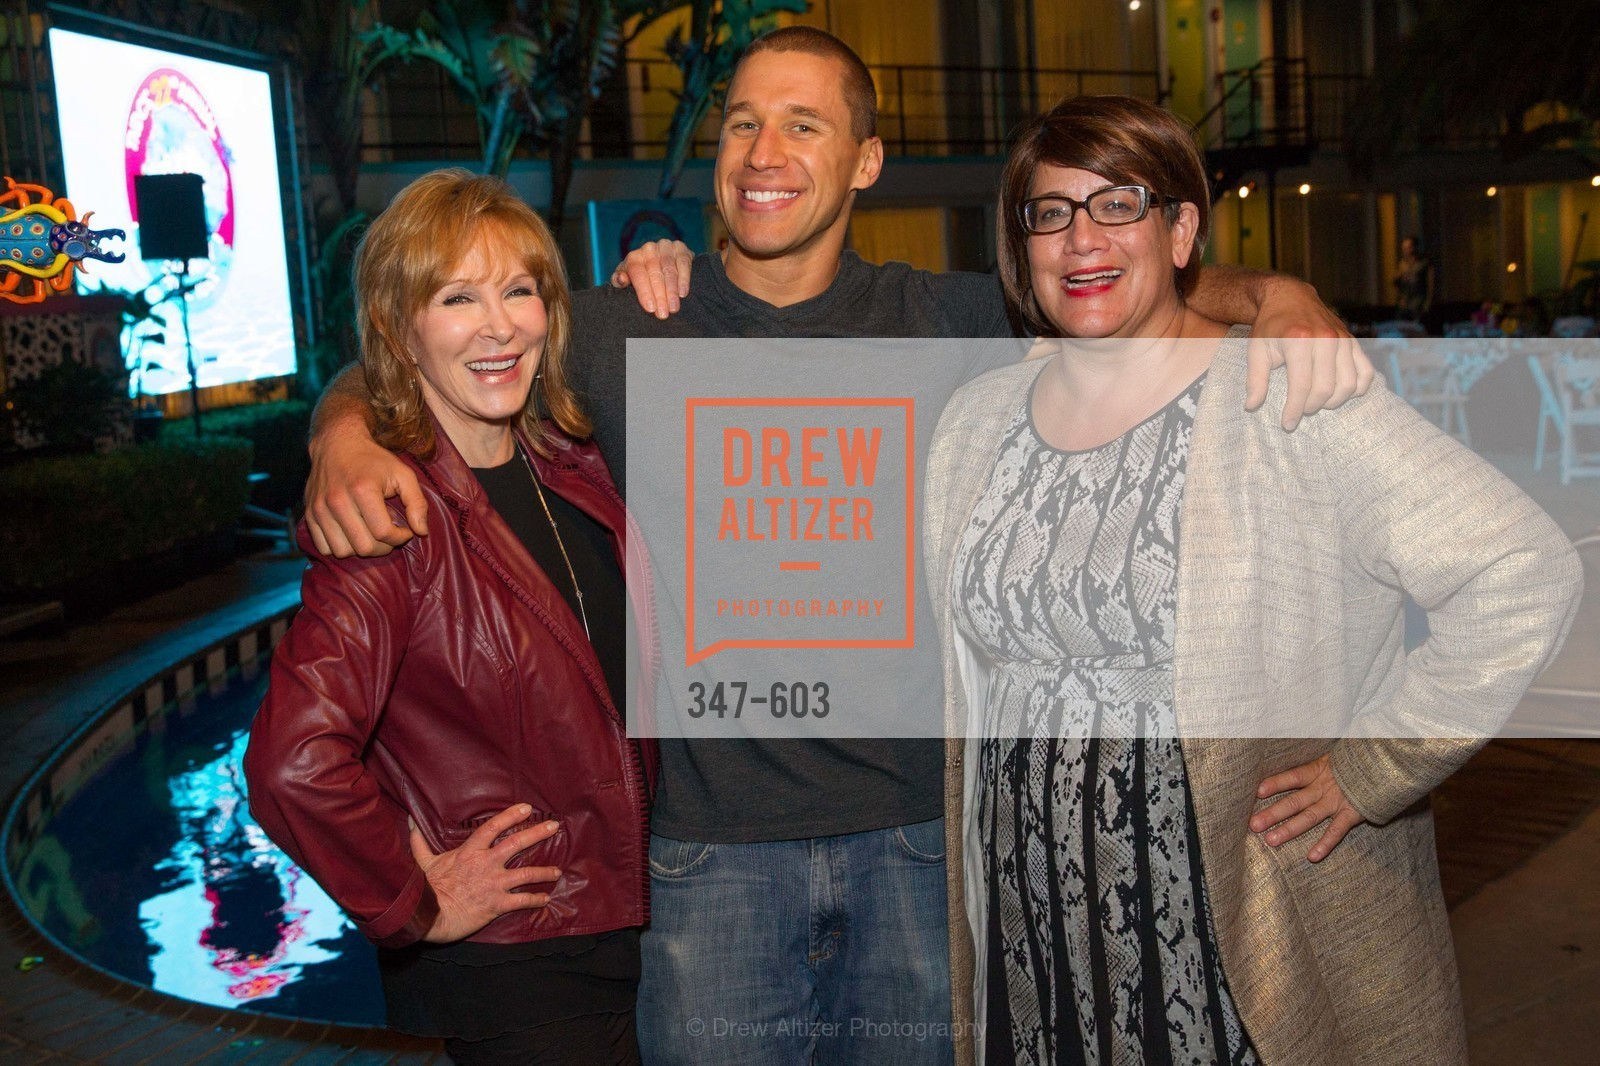 Cheryl Jennings, AJ Kirsch, 22nd Annual TNDC CELEBRITY POOL TOSS, US, October 8th, 2014,Drew Altizer, Drew Altizer Photography, full-service agency, private events, San Francisco photographer, photographer california